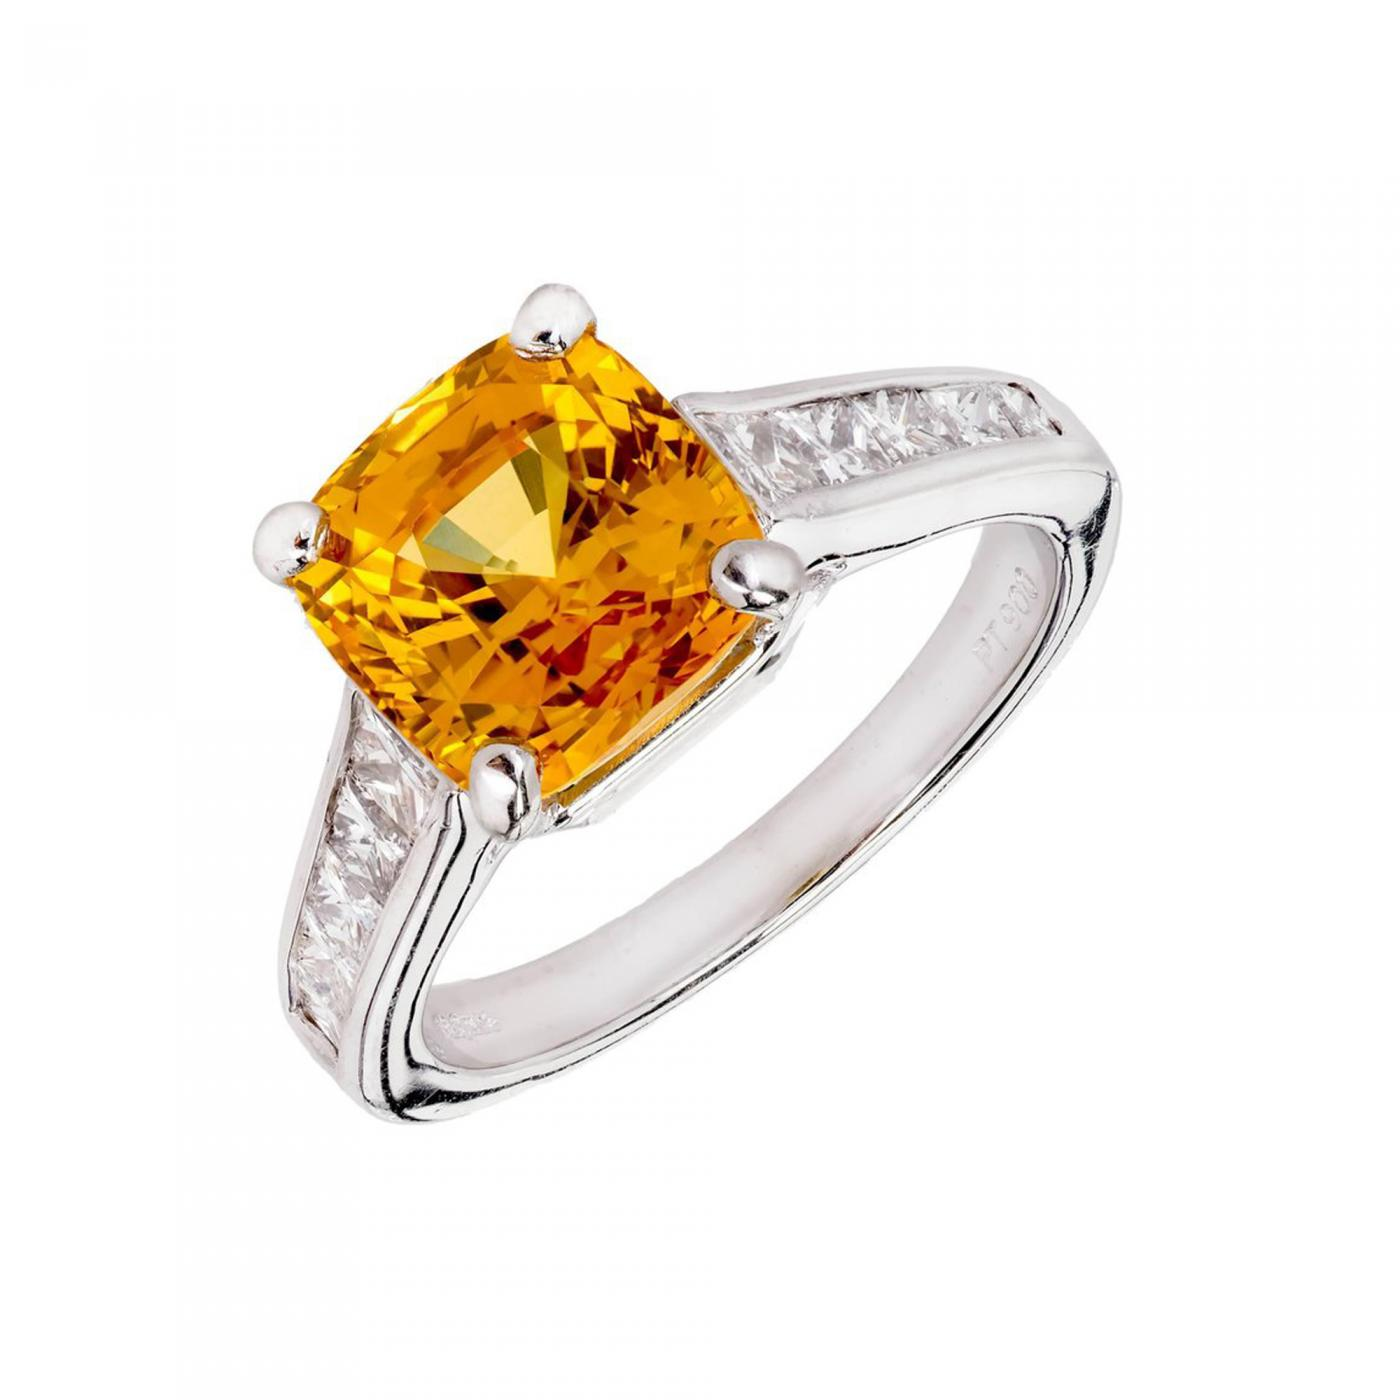 ring products rings engagement jewelry monaco amber jolie